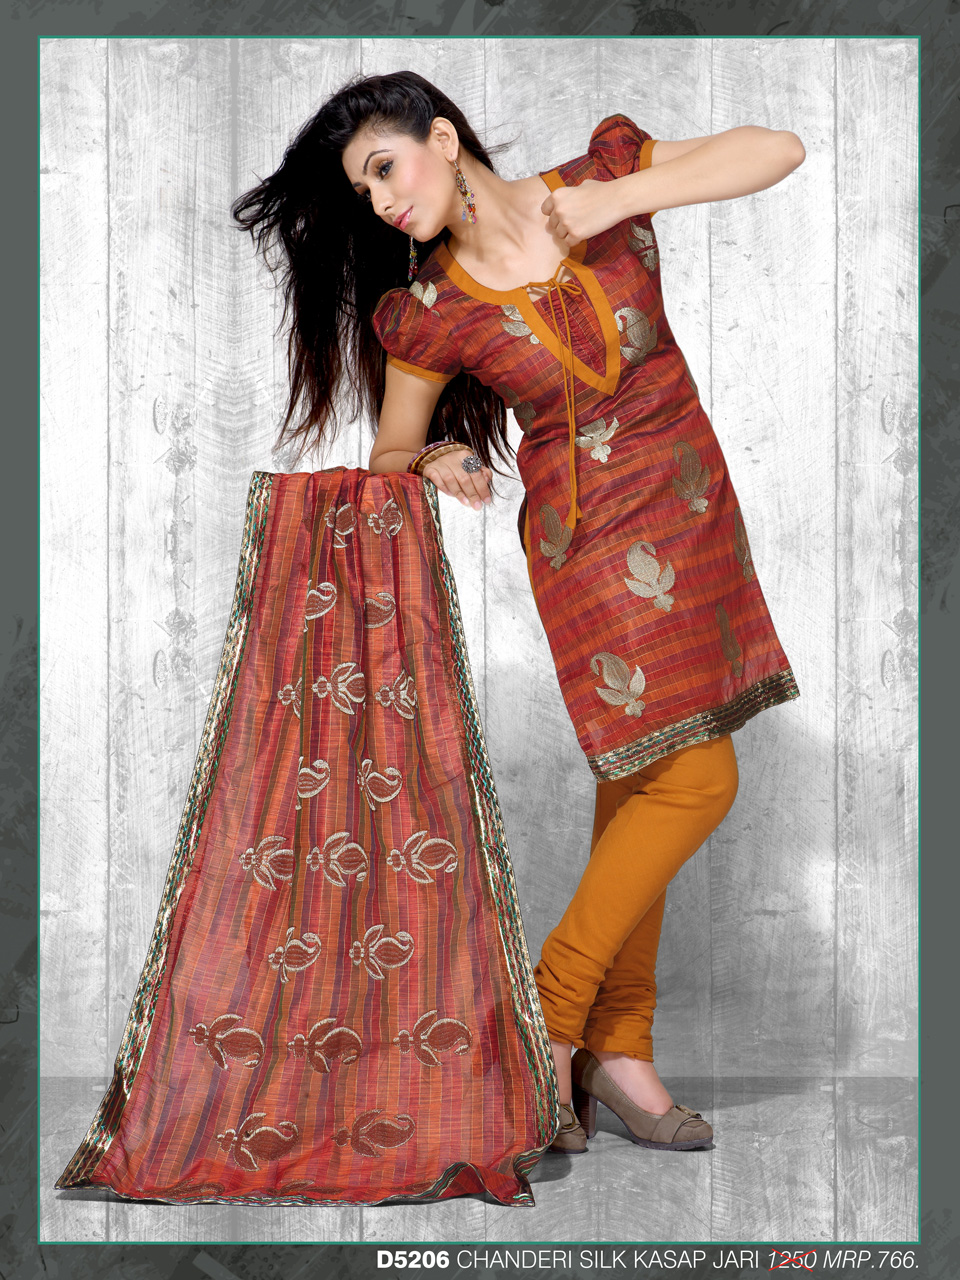 Kalazone Sarees with Price http://kalazonesilkmill.blogspot.com/2012/02/kalazone-new-designer-collection.html